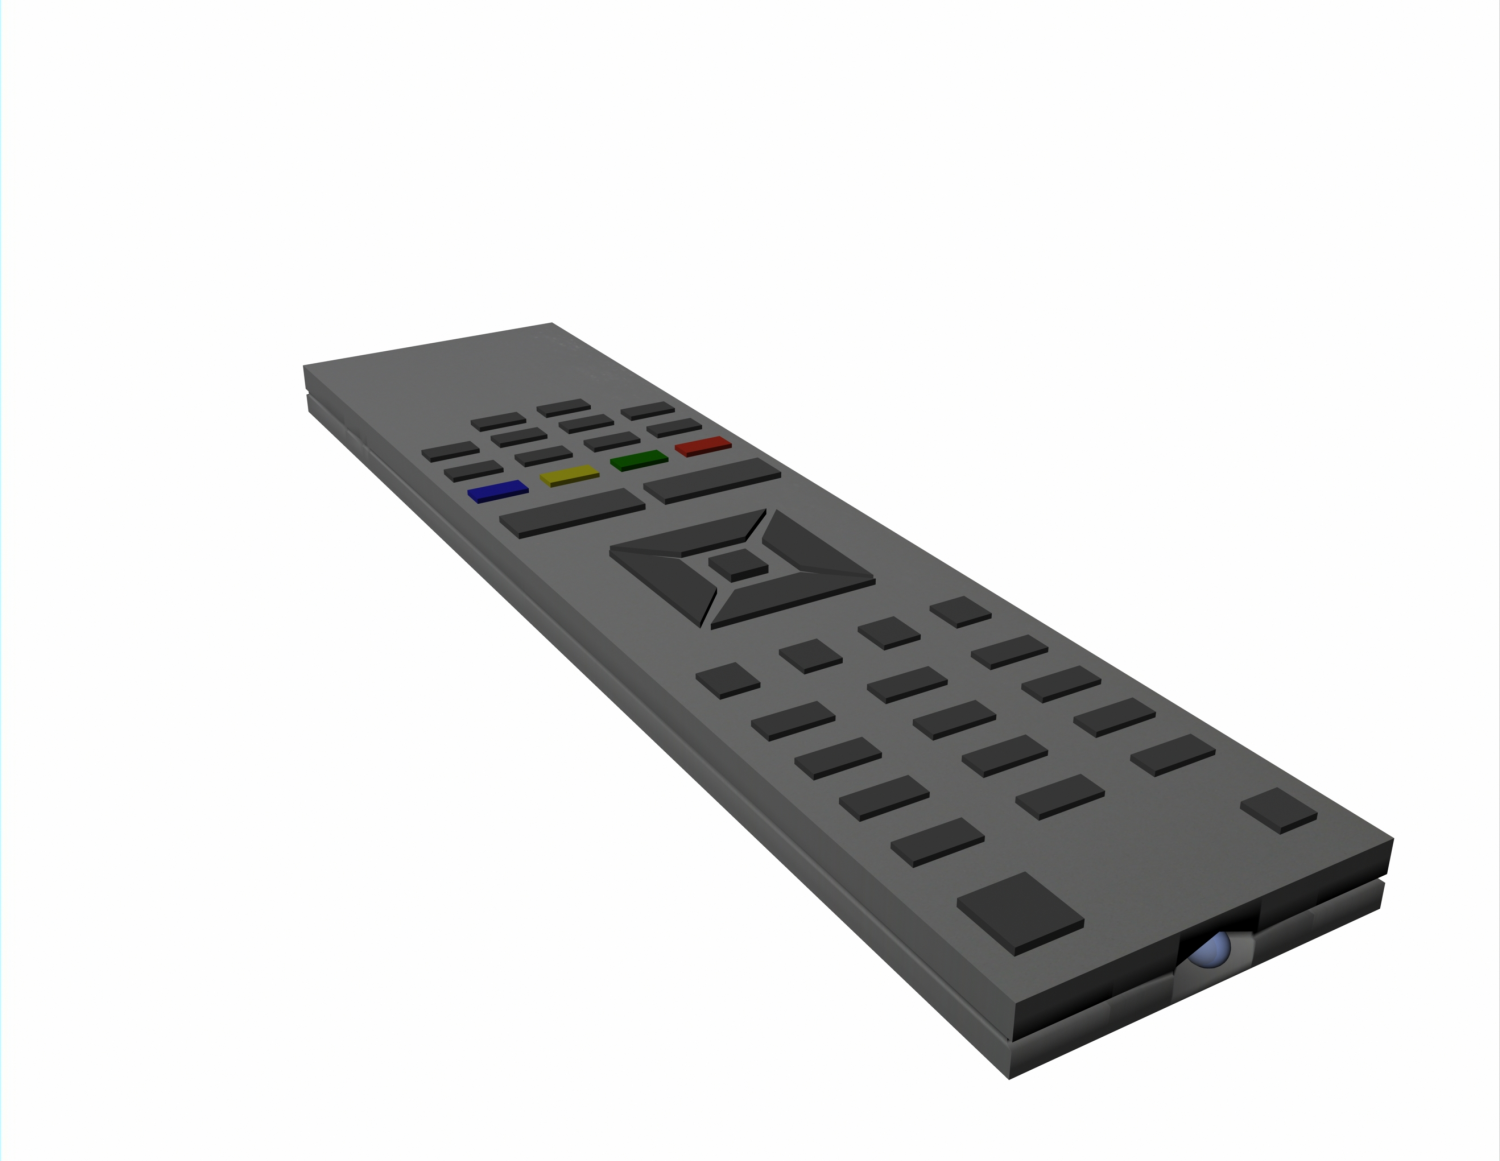 Remote control free 3d model download